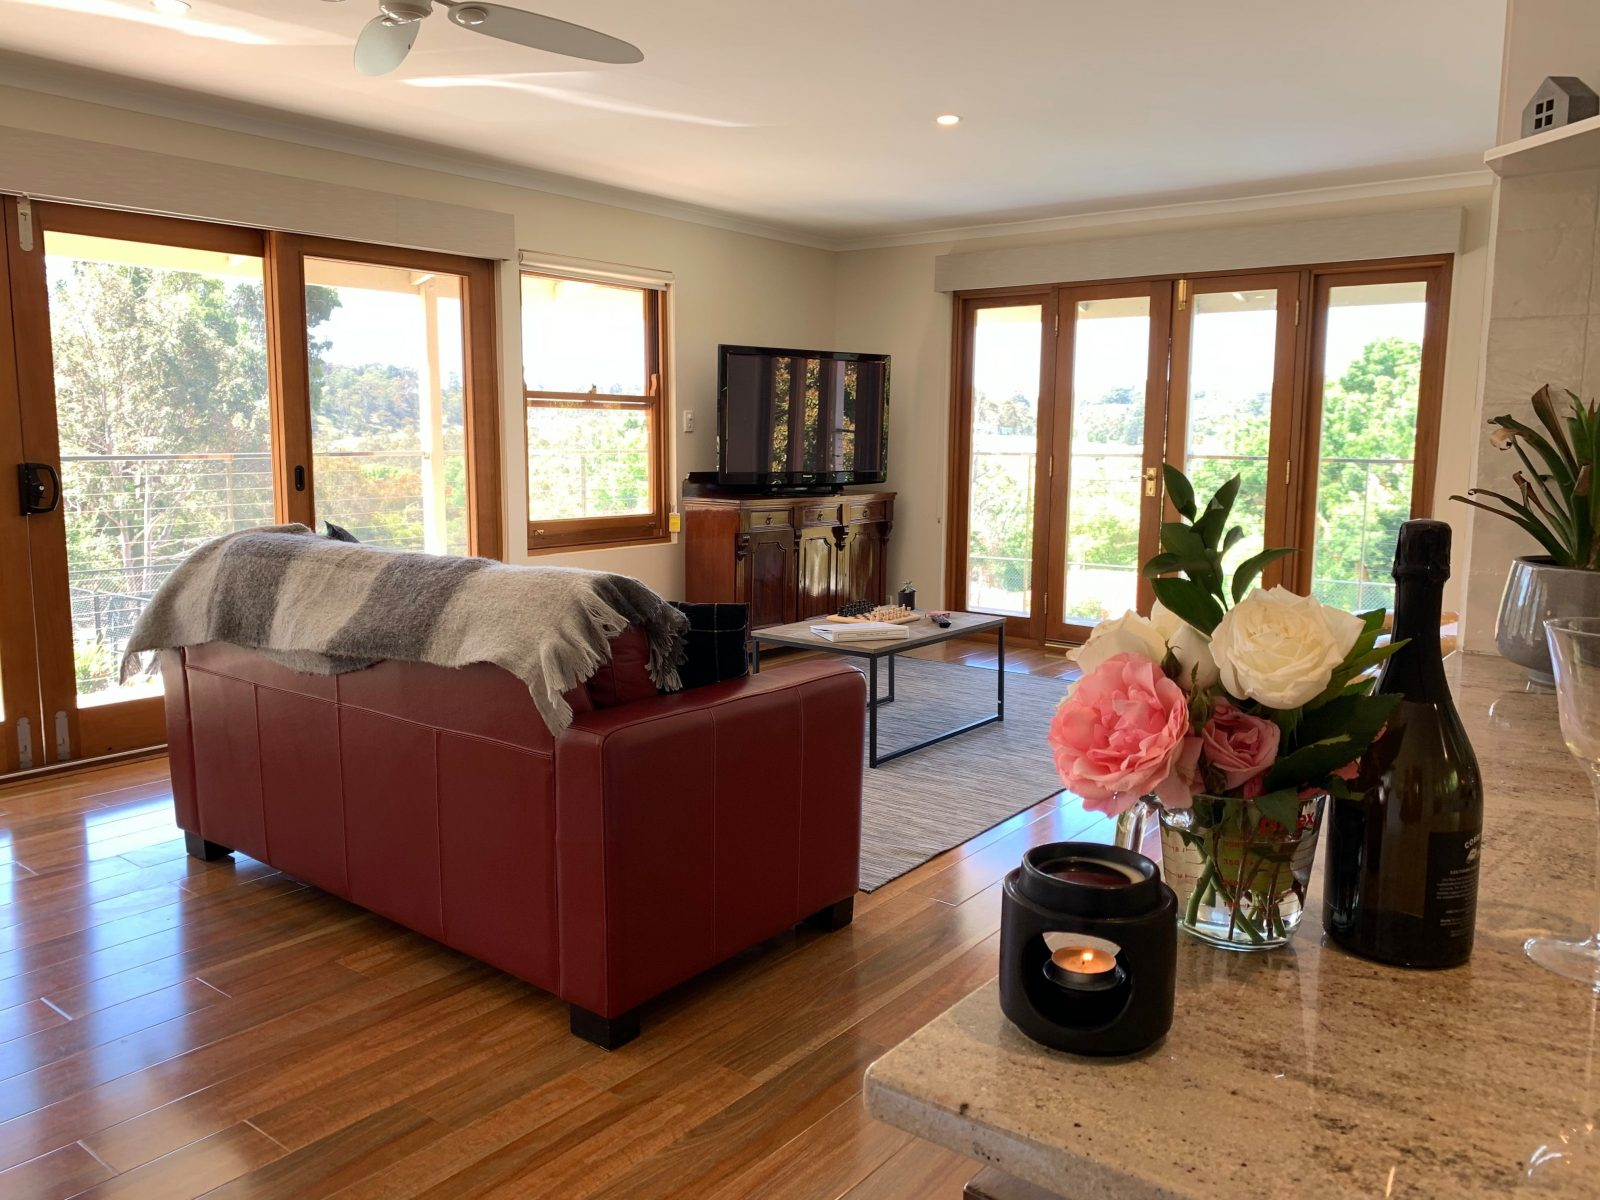 The Hahndorf Luxury Apartment Lounge dining room has a beautiful balcony to sit on